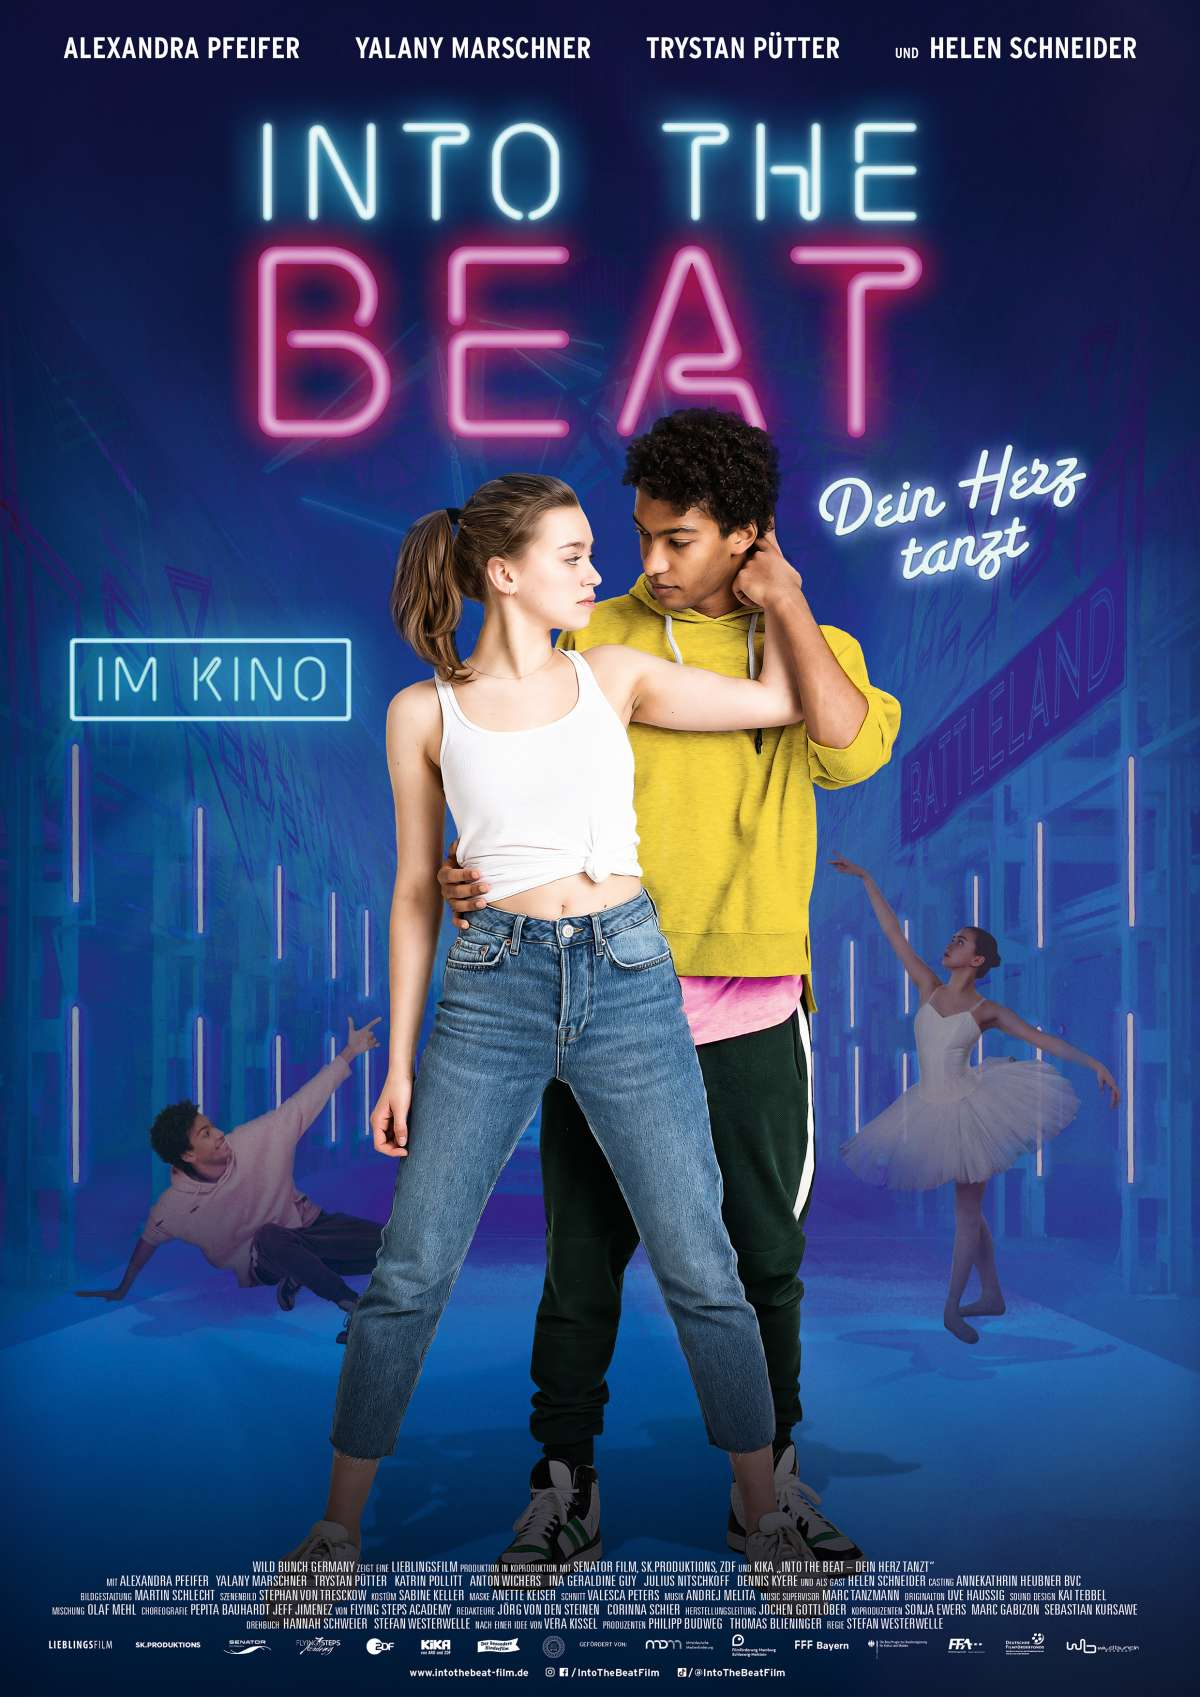 Into the Beat - Dein Herz tanzt - Cineplex  - Paderborn